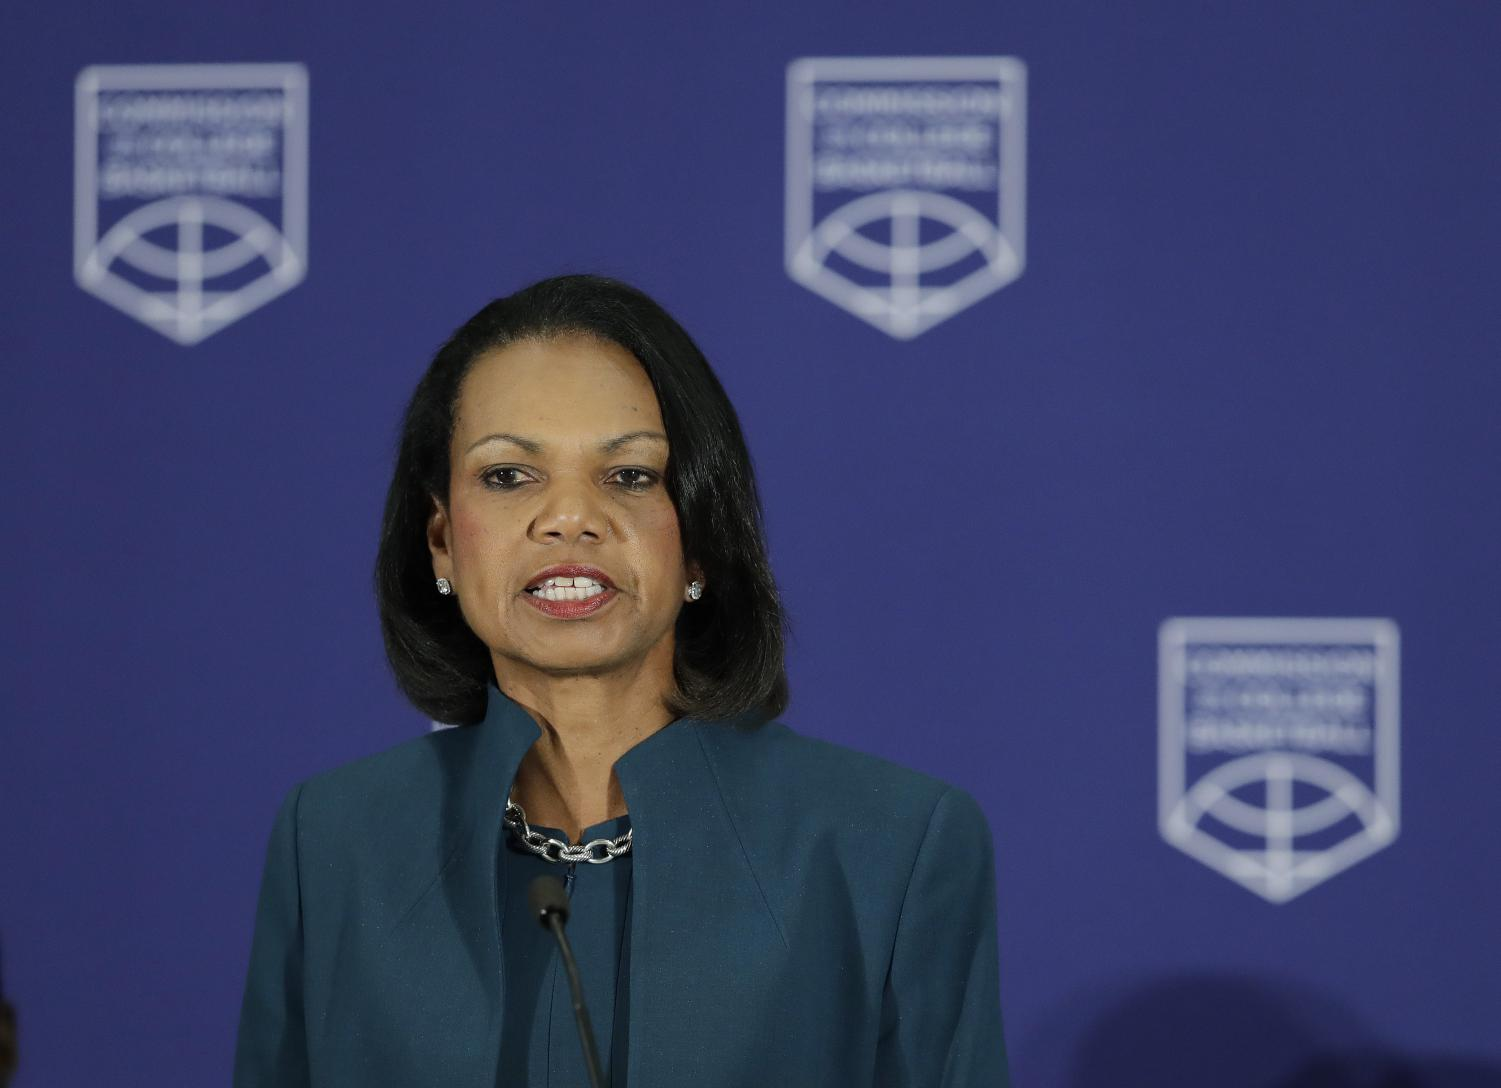 Former Secretary of State and Stanford University Provost Condoleezza Rice chairs the Commision on College Baksetball.  Darron Cummings | AP